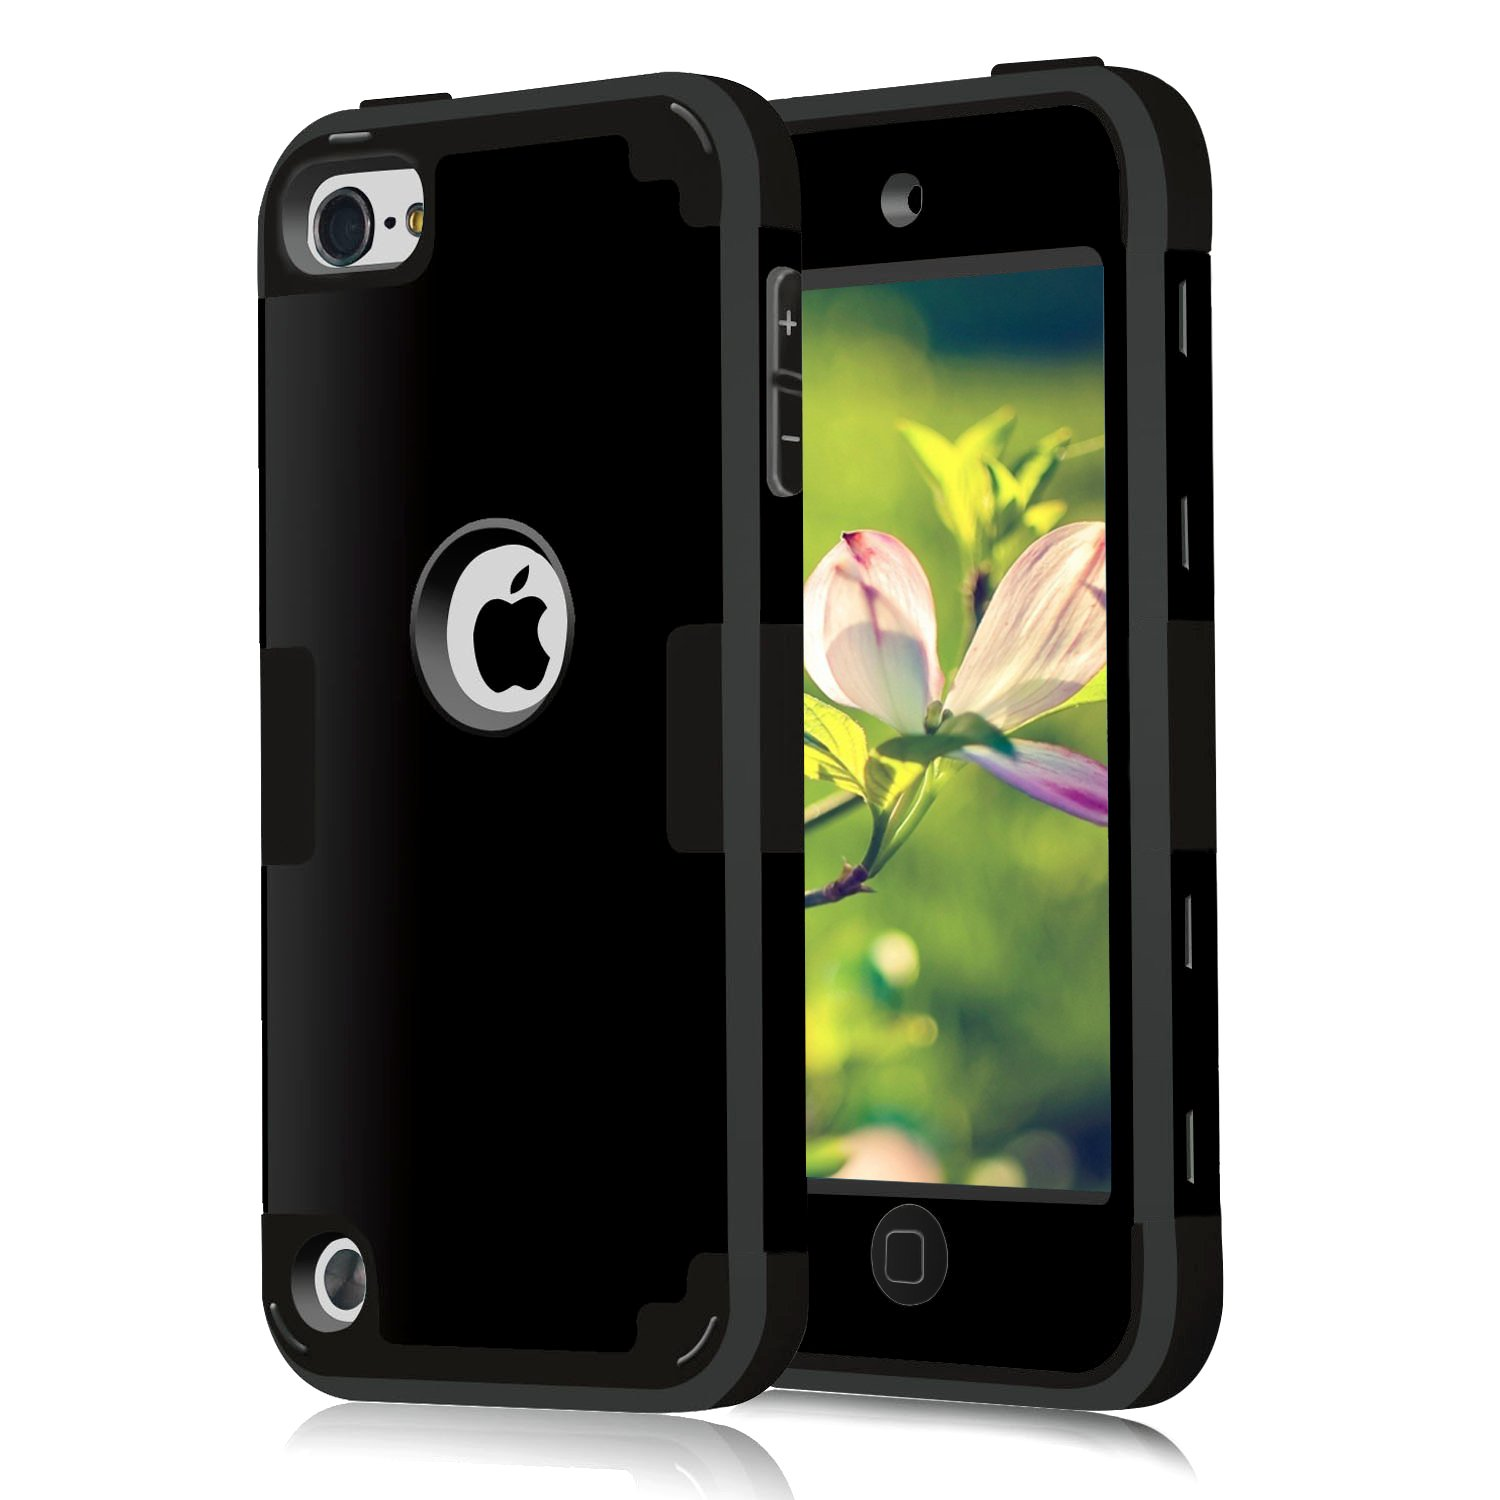 Case for iPod Touch Cases 7 for iPod Touch 7th 6th 5th Generation Case for iPod Touch 6th Generation Case, CheerShare 3 in 1 Hard PC Case + Silicone Shockproof Heavy Duty Cover Protective Case (Black)